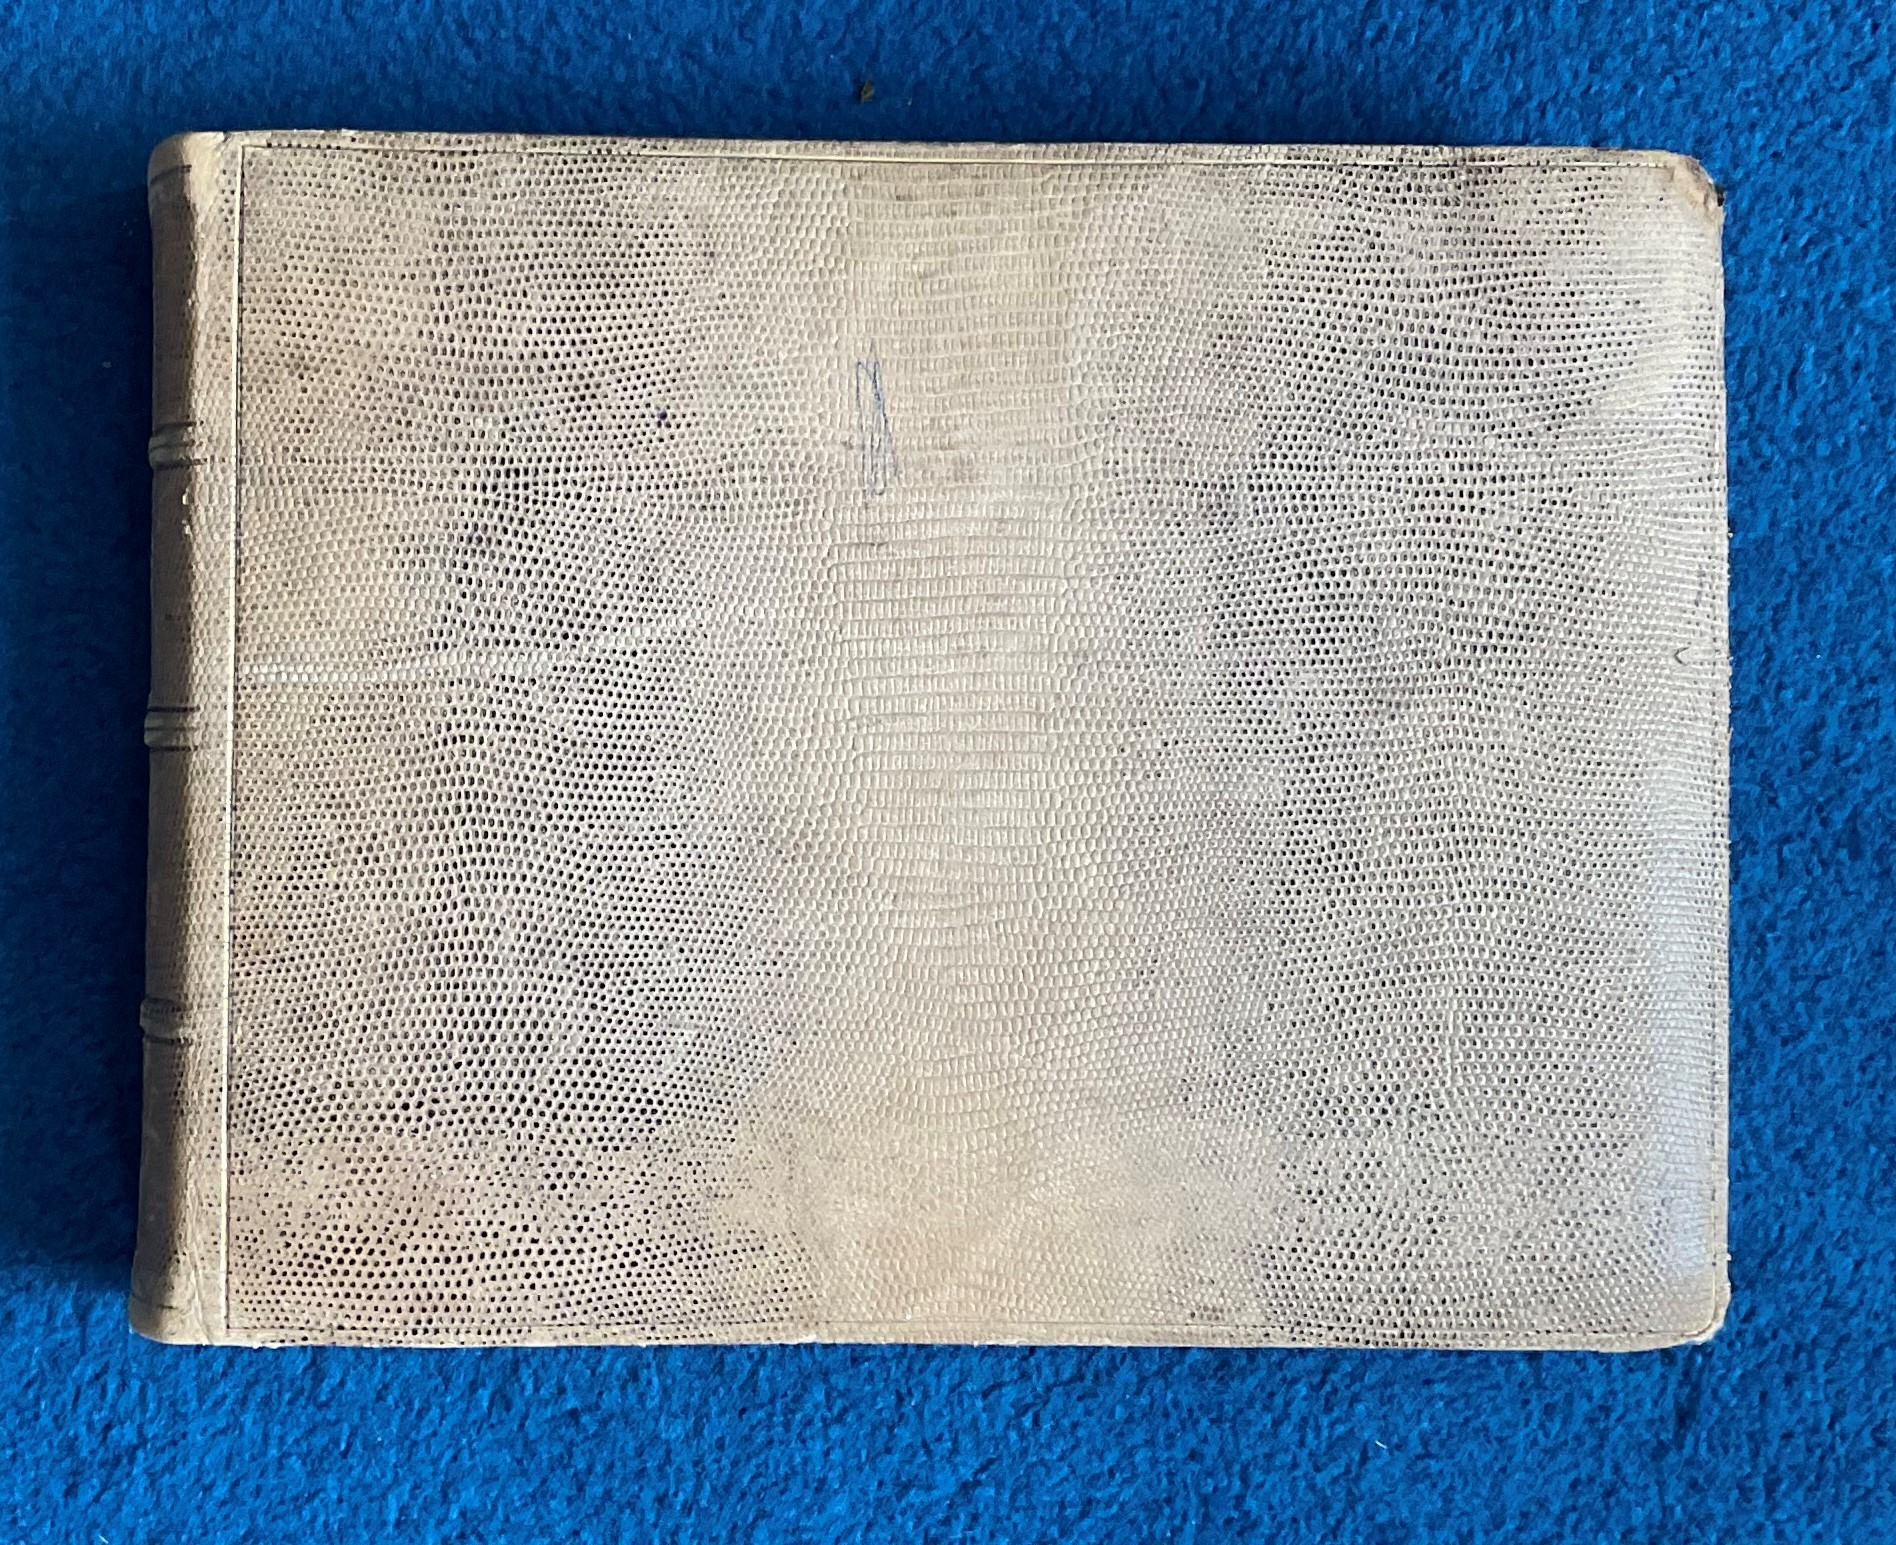 Sir Archibald McIndoe Family Photo Album plus 5 Hardback Books from His personal collection - Image 20 of 23